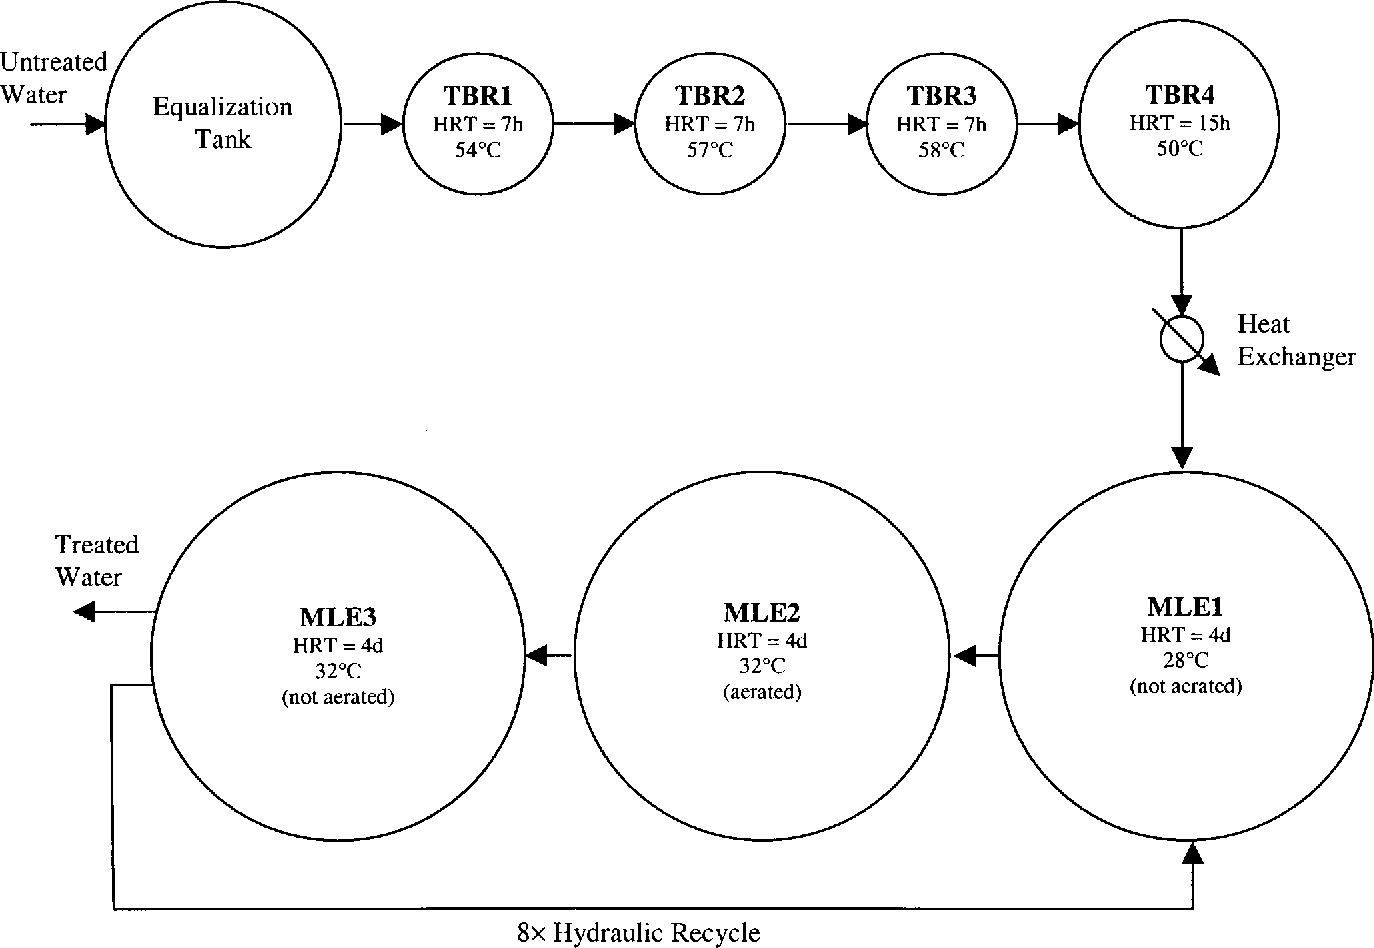 hight resolution of process flow schematic of the industrial wastewater treatment facility studied relative